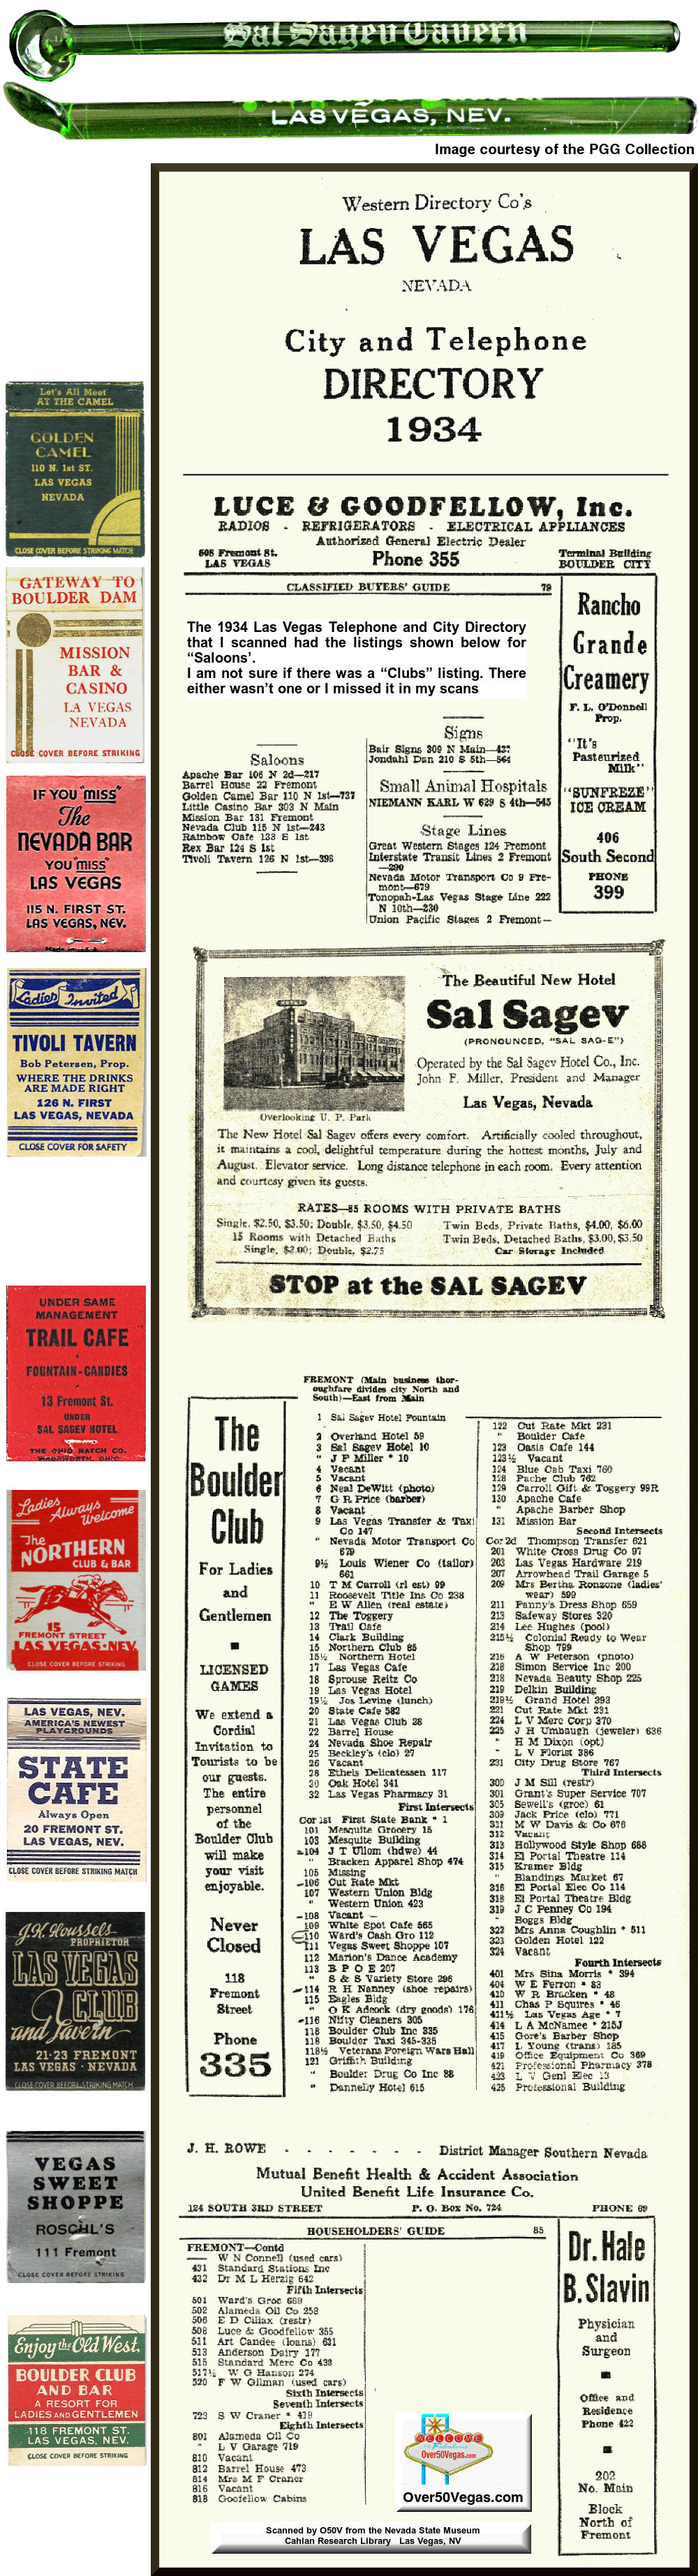 1934 Las Vegas City and Telephone Directory listings for Clubs